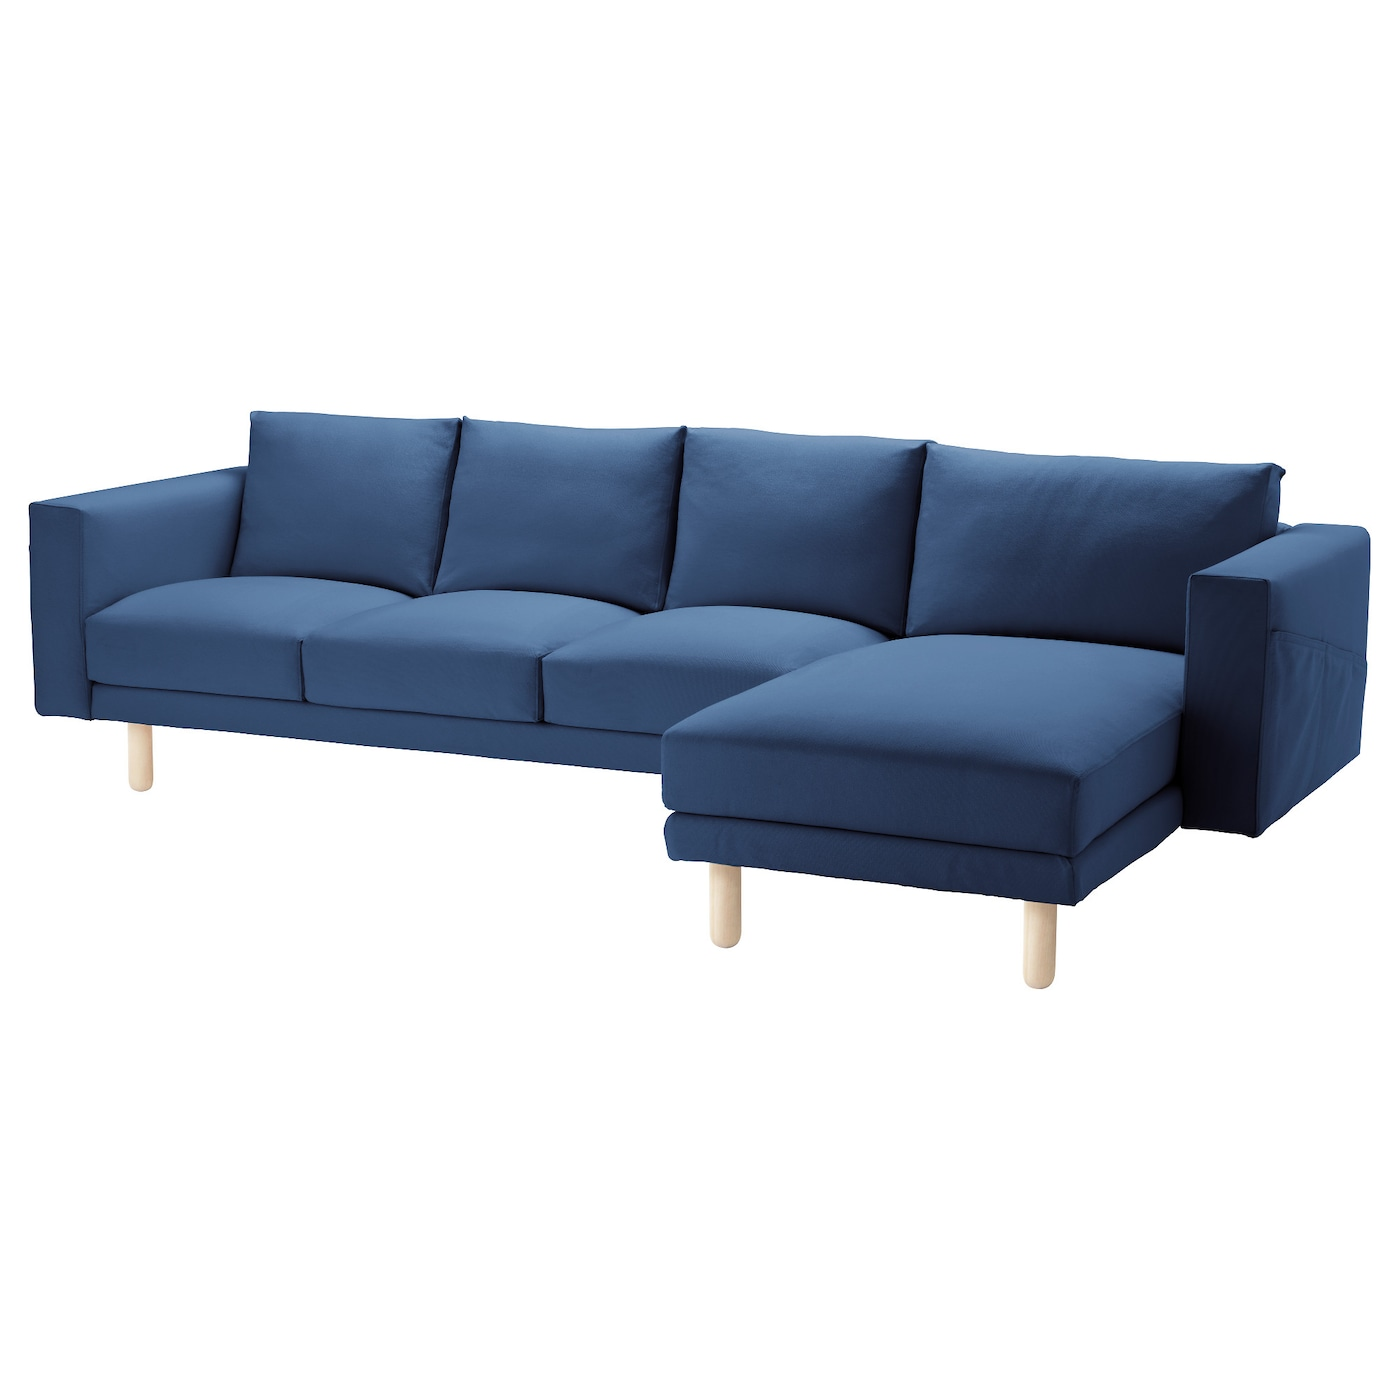 Norsborg three seat sofa and chaise longue gr sbo dark for Chaise longue ikea